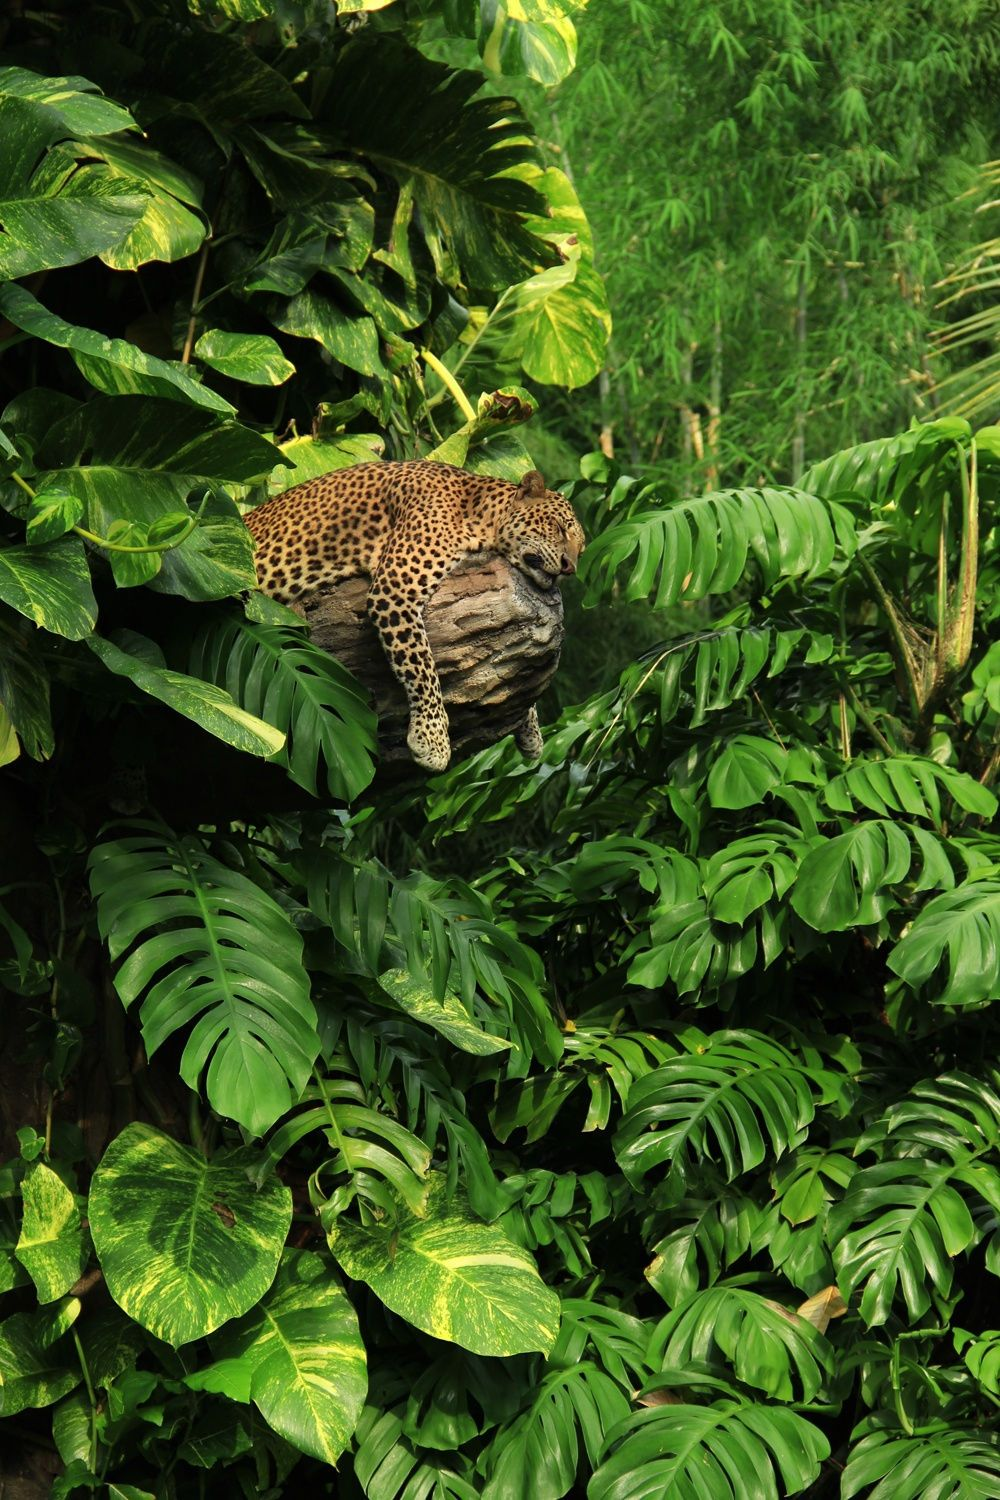 A Sleeping Javanese Leopard In The Jungle Surroundings With